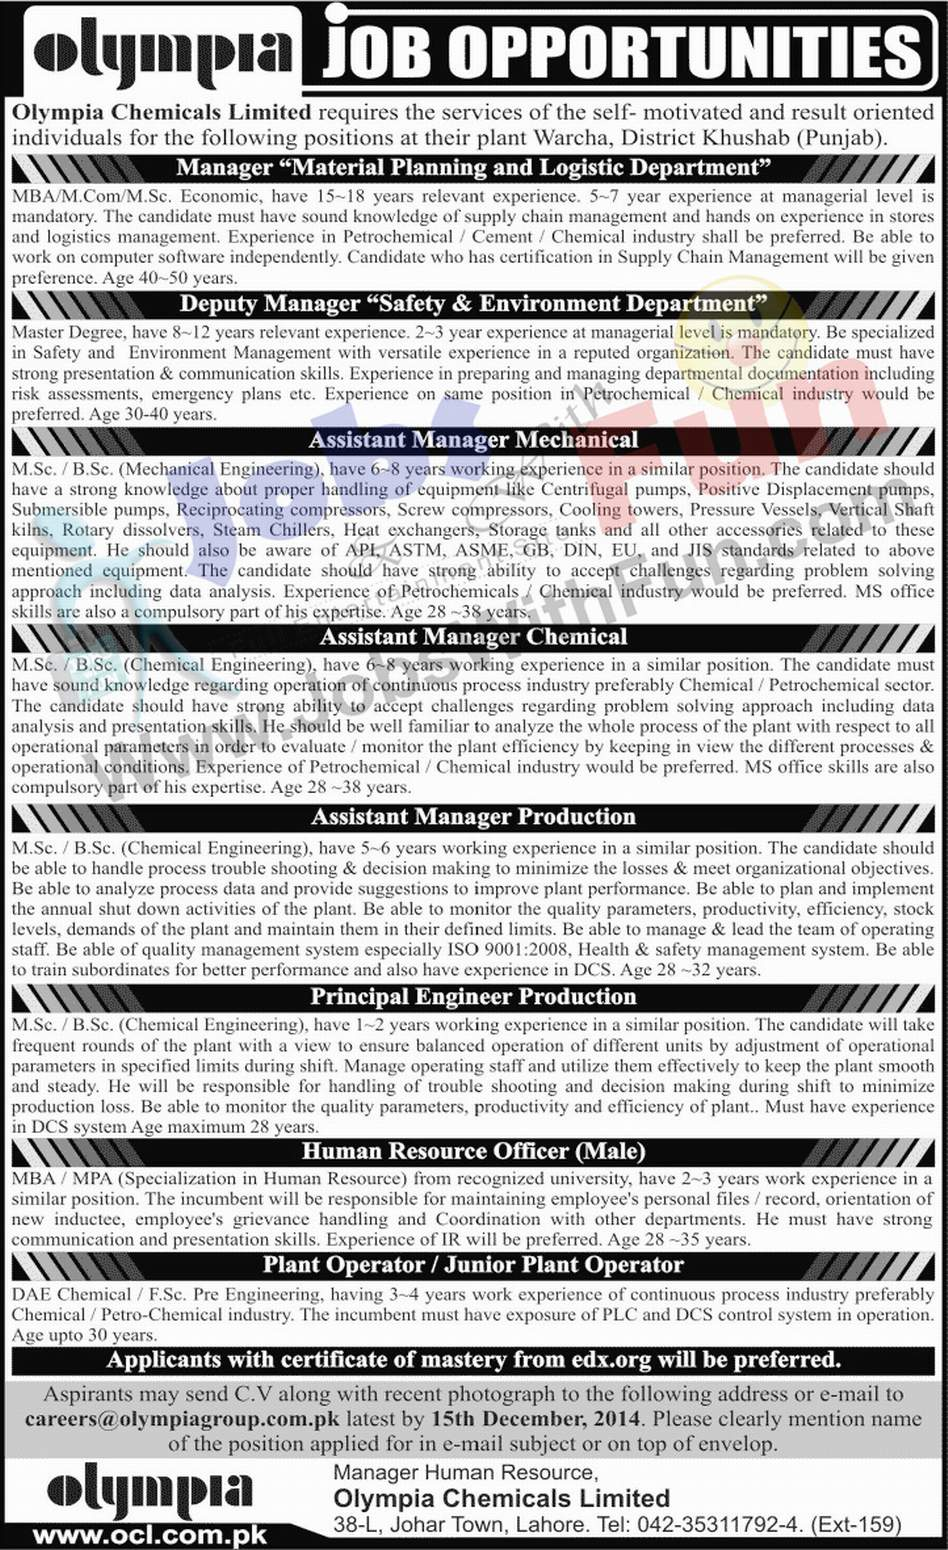 Job Opportunities In Olympia Chemicals Limited District